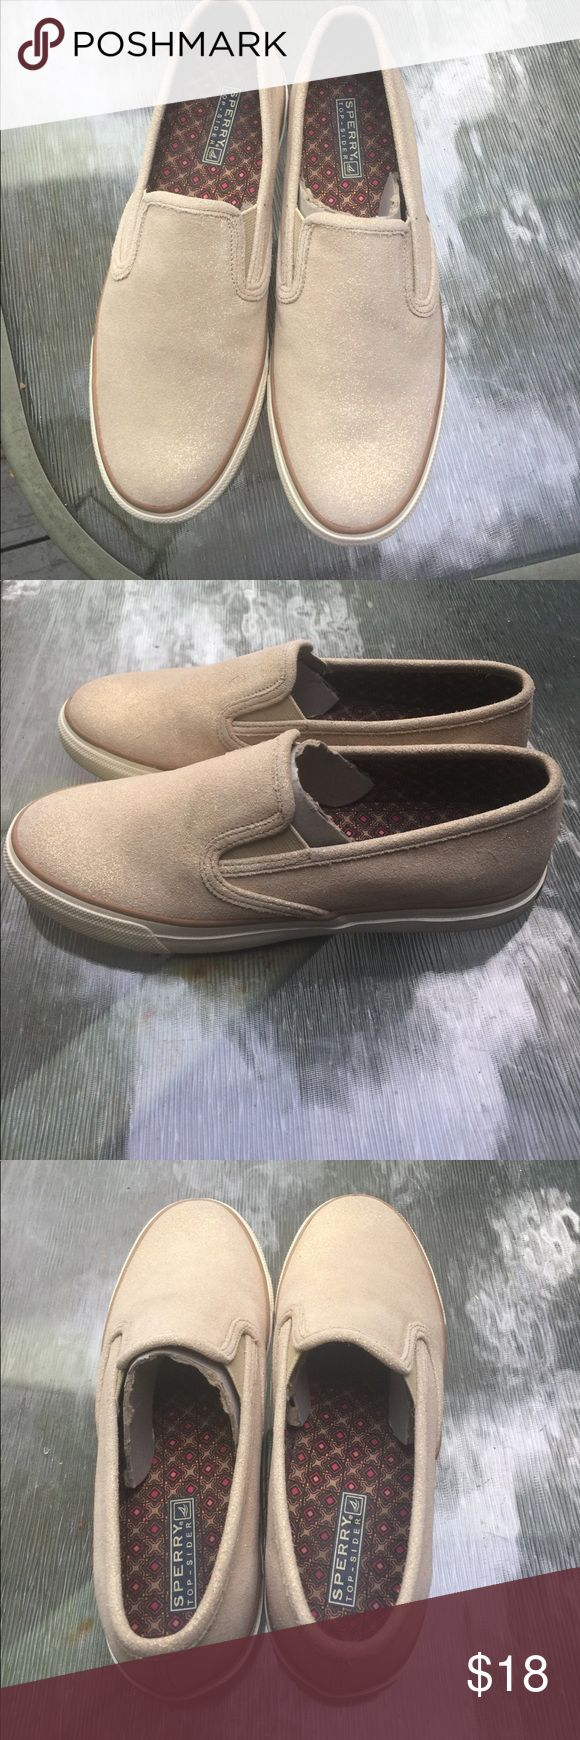 Sperry loafers, size 8.5. Gently worn! Soles show wear. Nude/cream color with sparkle. Size 8.5. Sperry Shoes Flats & Loafers